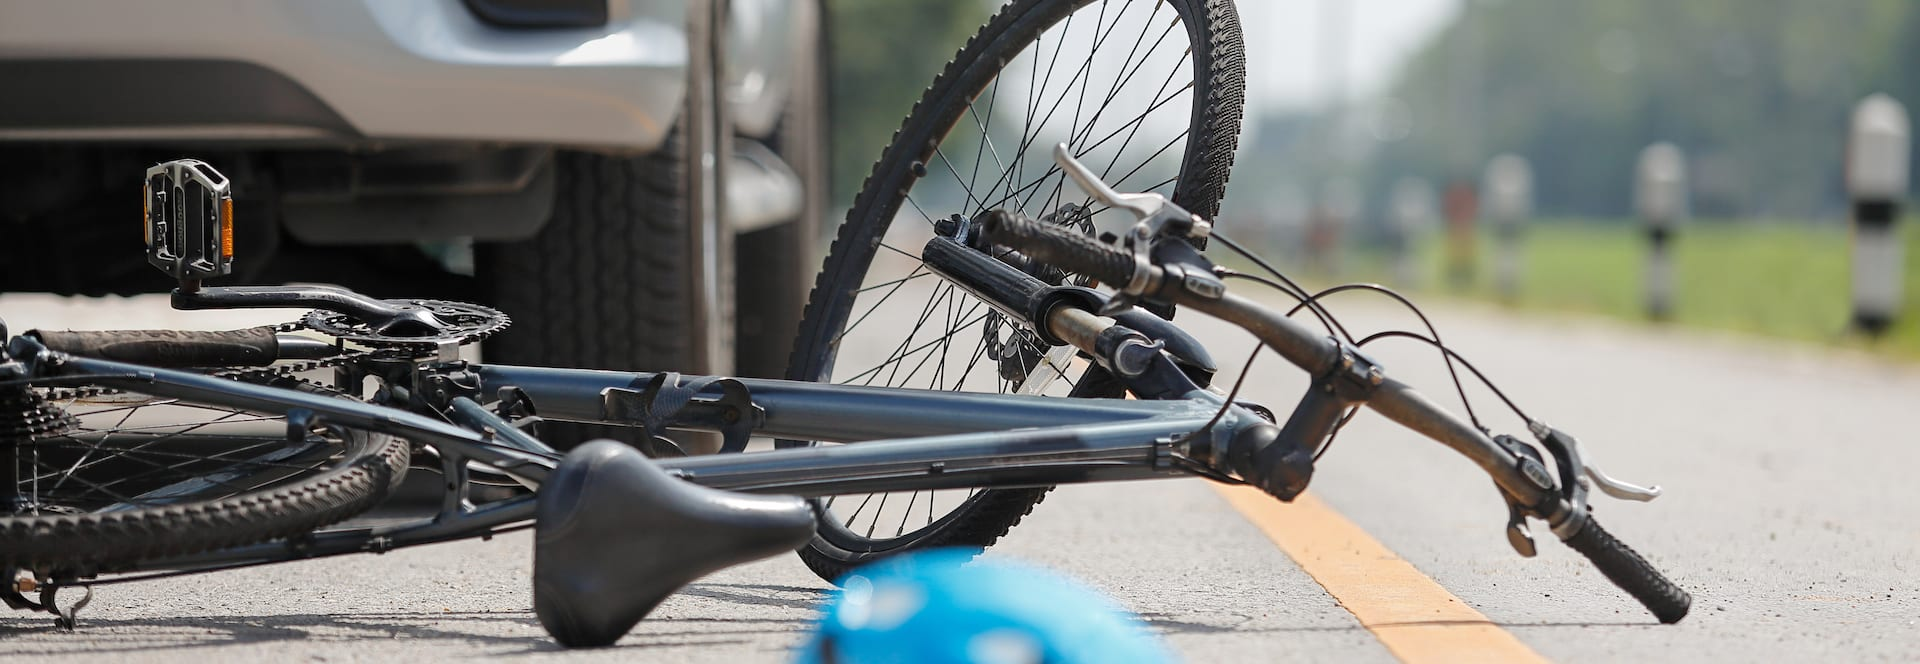 BICYCLE SAFETY WHILE SHARING THE ROADS IN ATLANTA